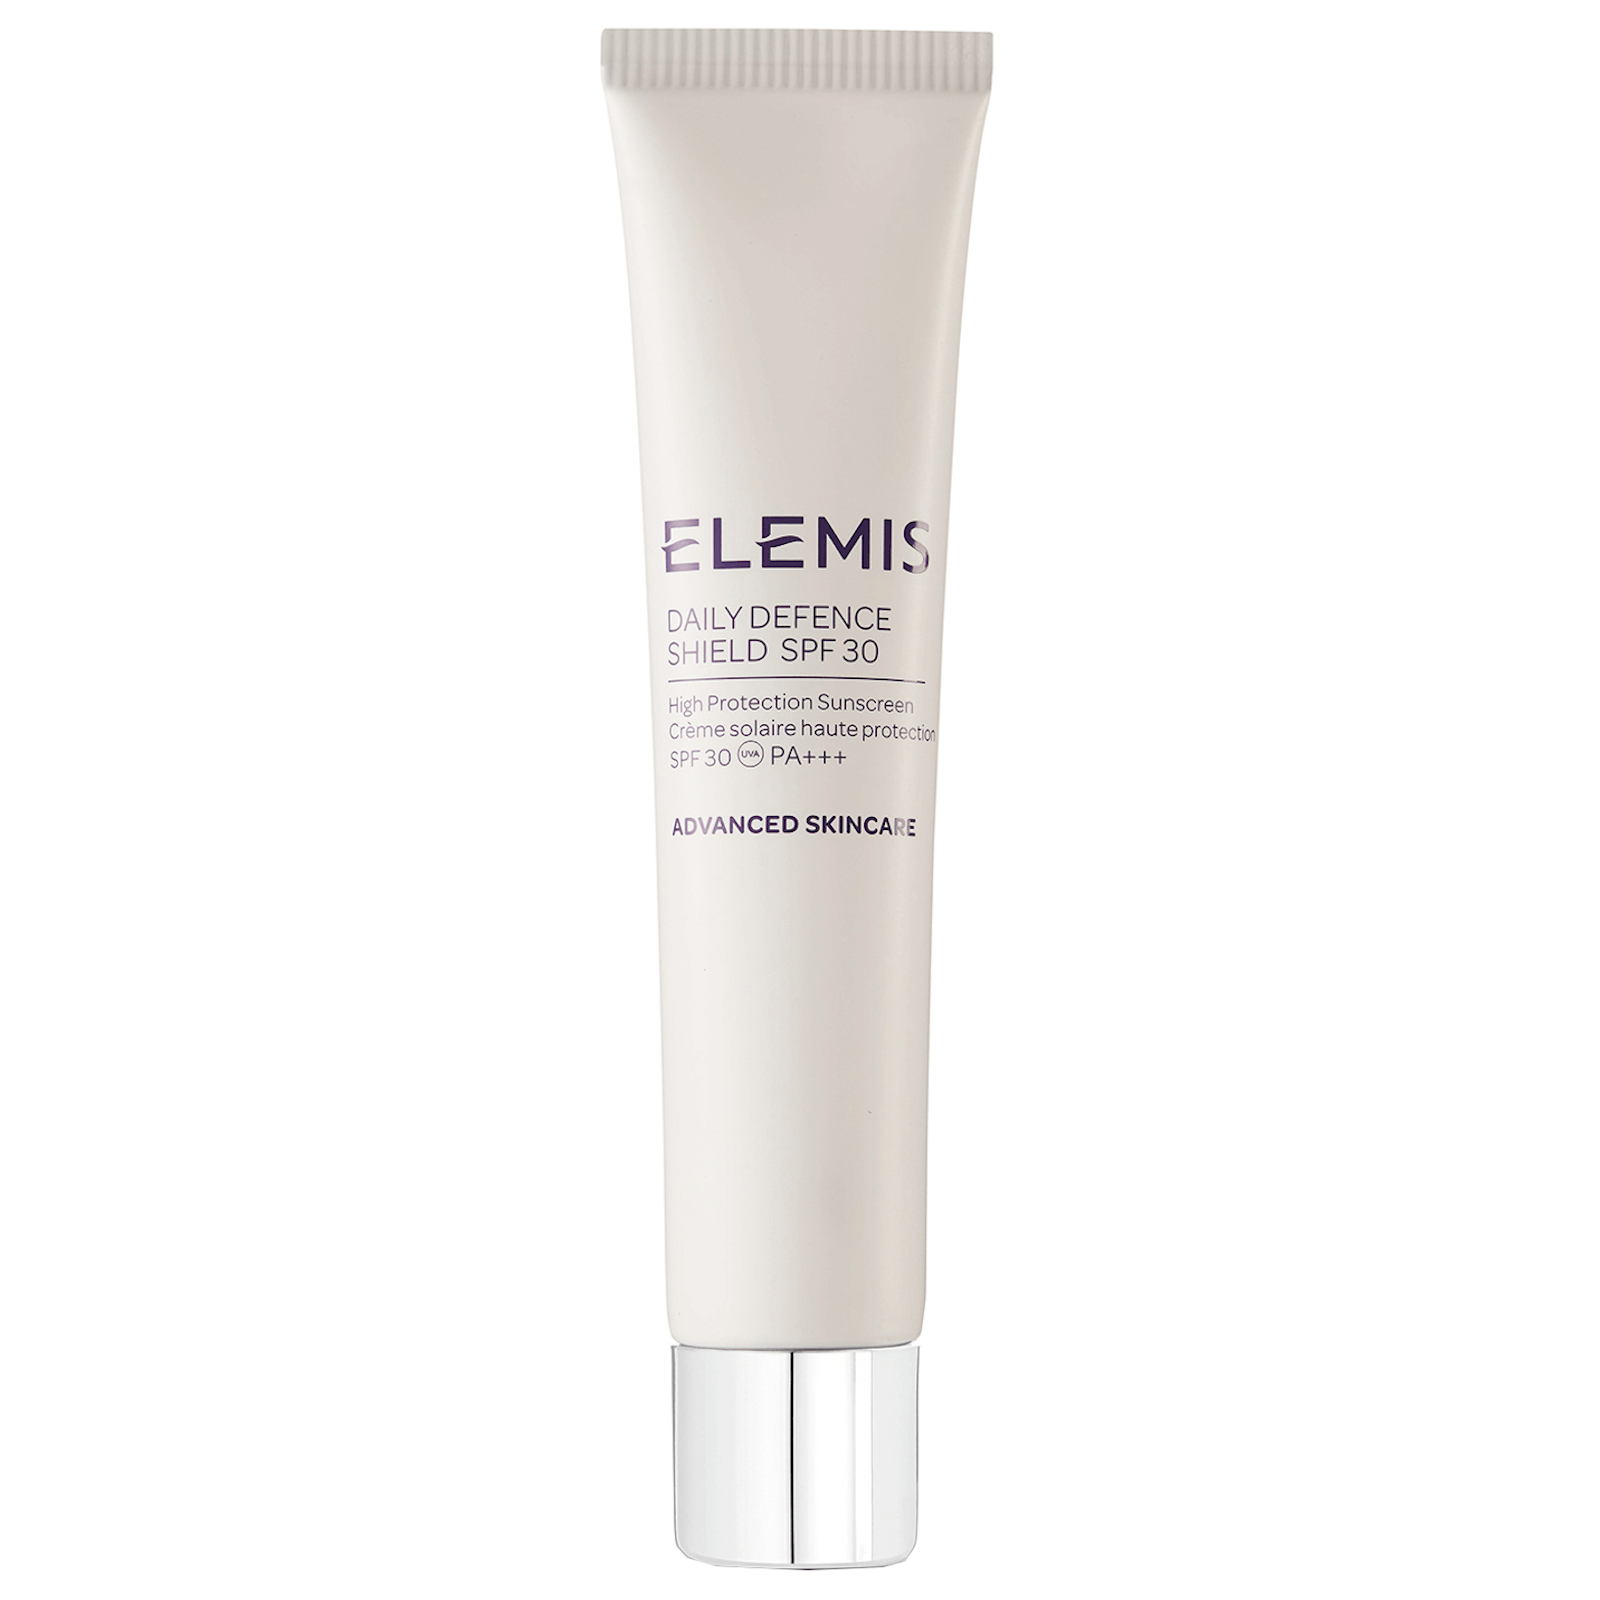 Elemis Daily Defence Shield SPF30, 40ml, Skin Care, London Loves Beauty